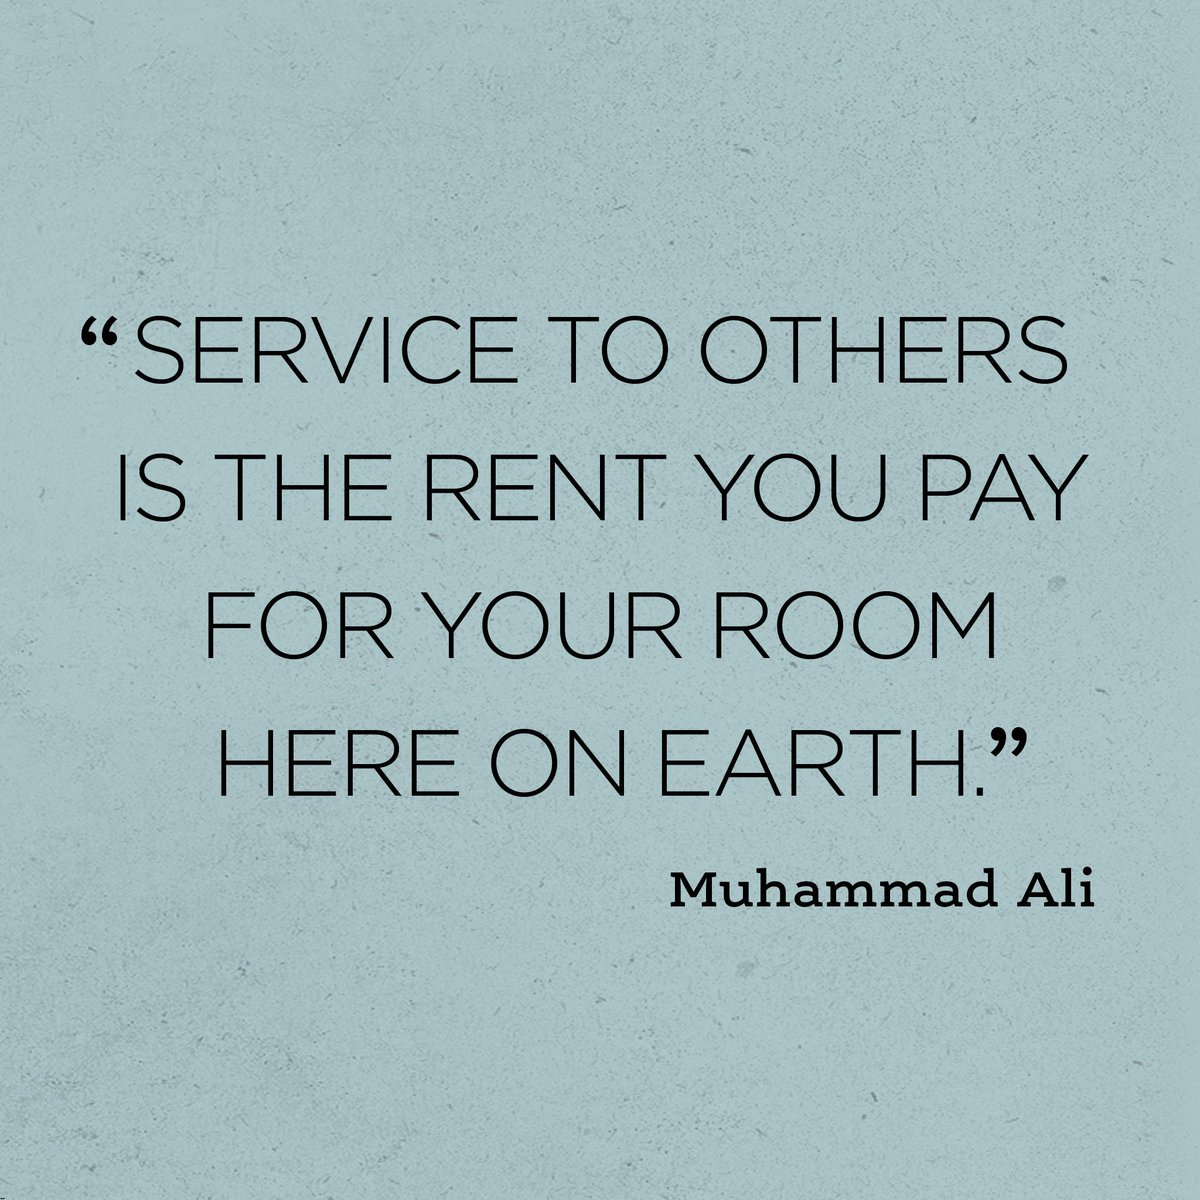 """Service to others is the rent you pay for your room here on Earth."" - Muhammad Ali https://t.co/OdKiKv9U5I"